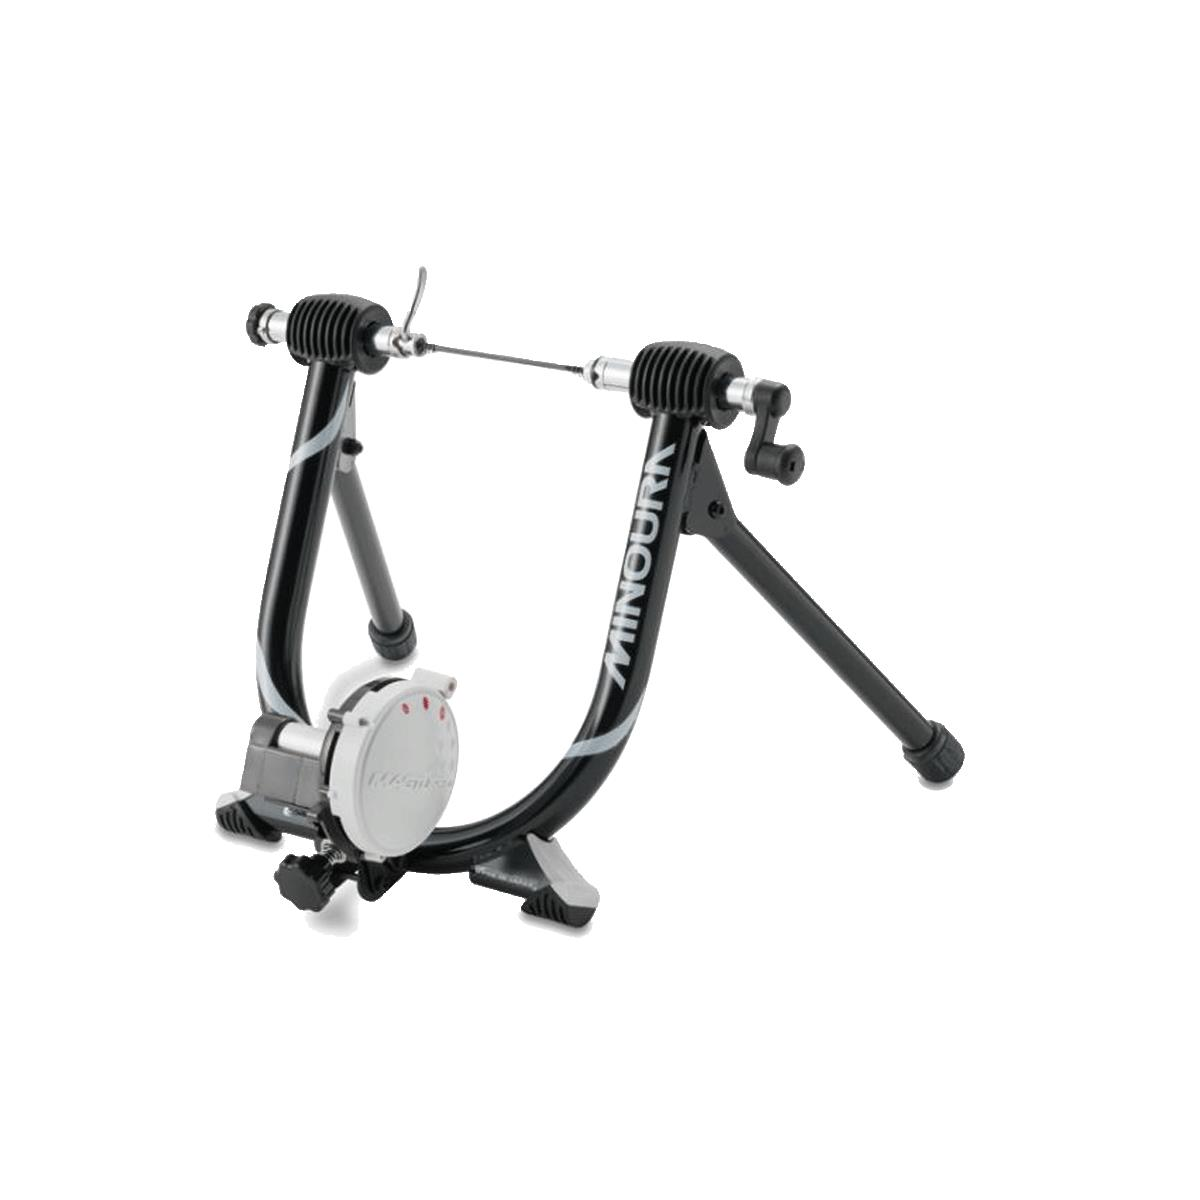 Minoura Mag Ride 60D Indoor Home Trainer